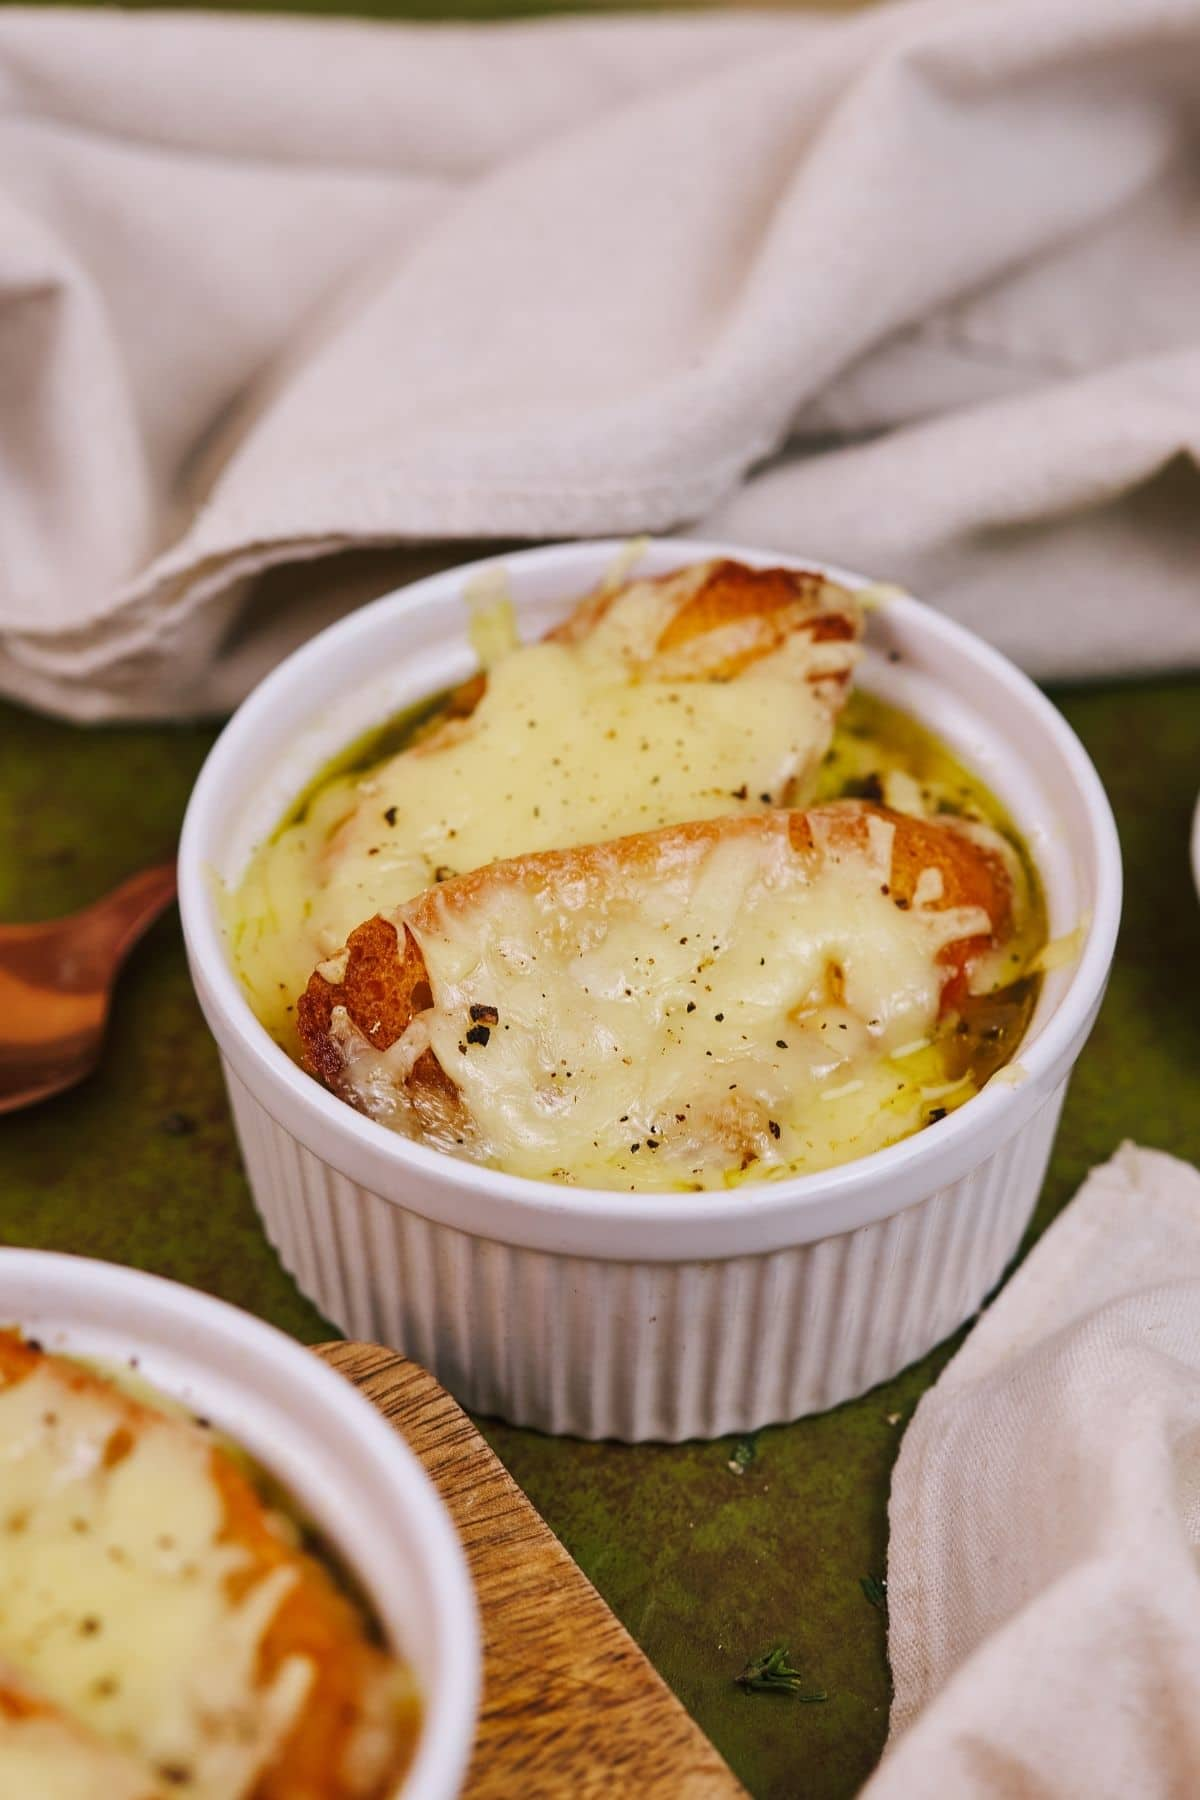 Ramekins on green table filled with french onion soup